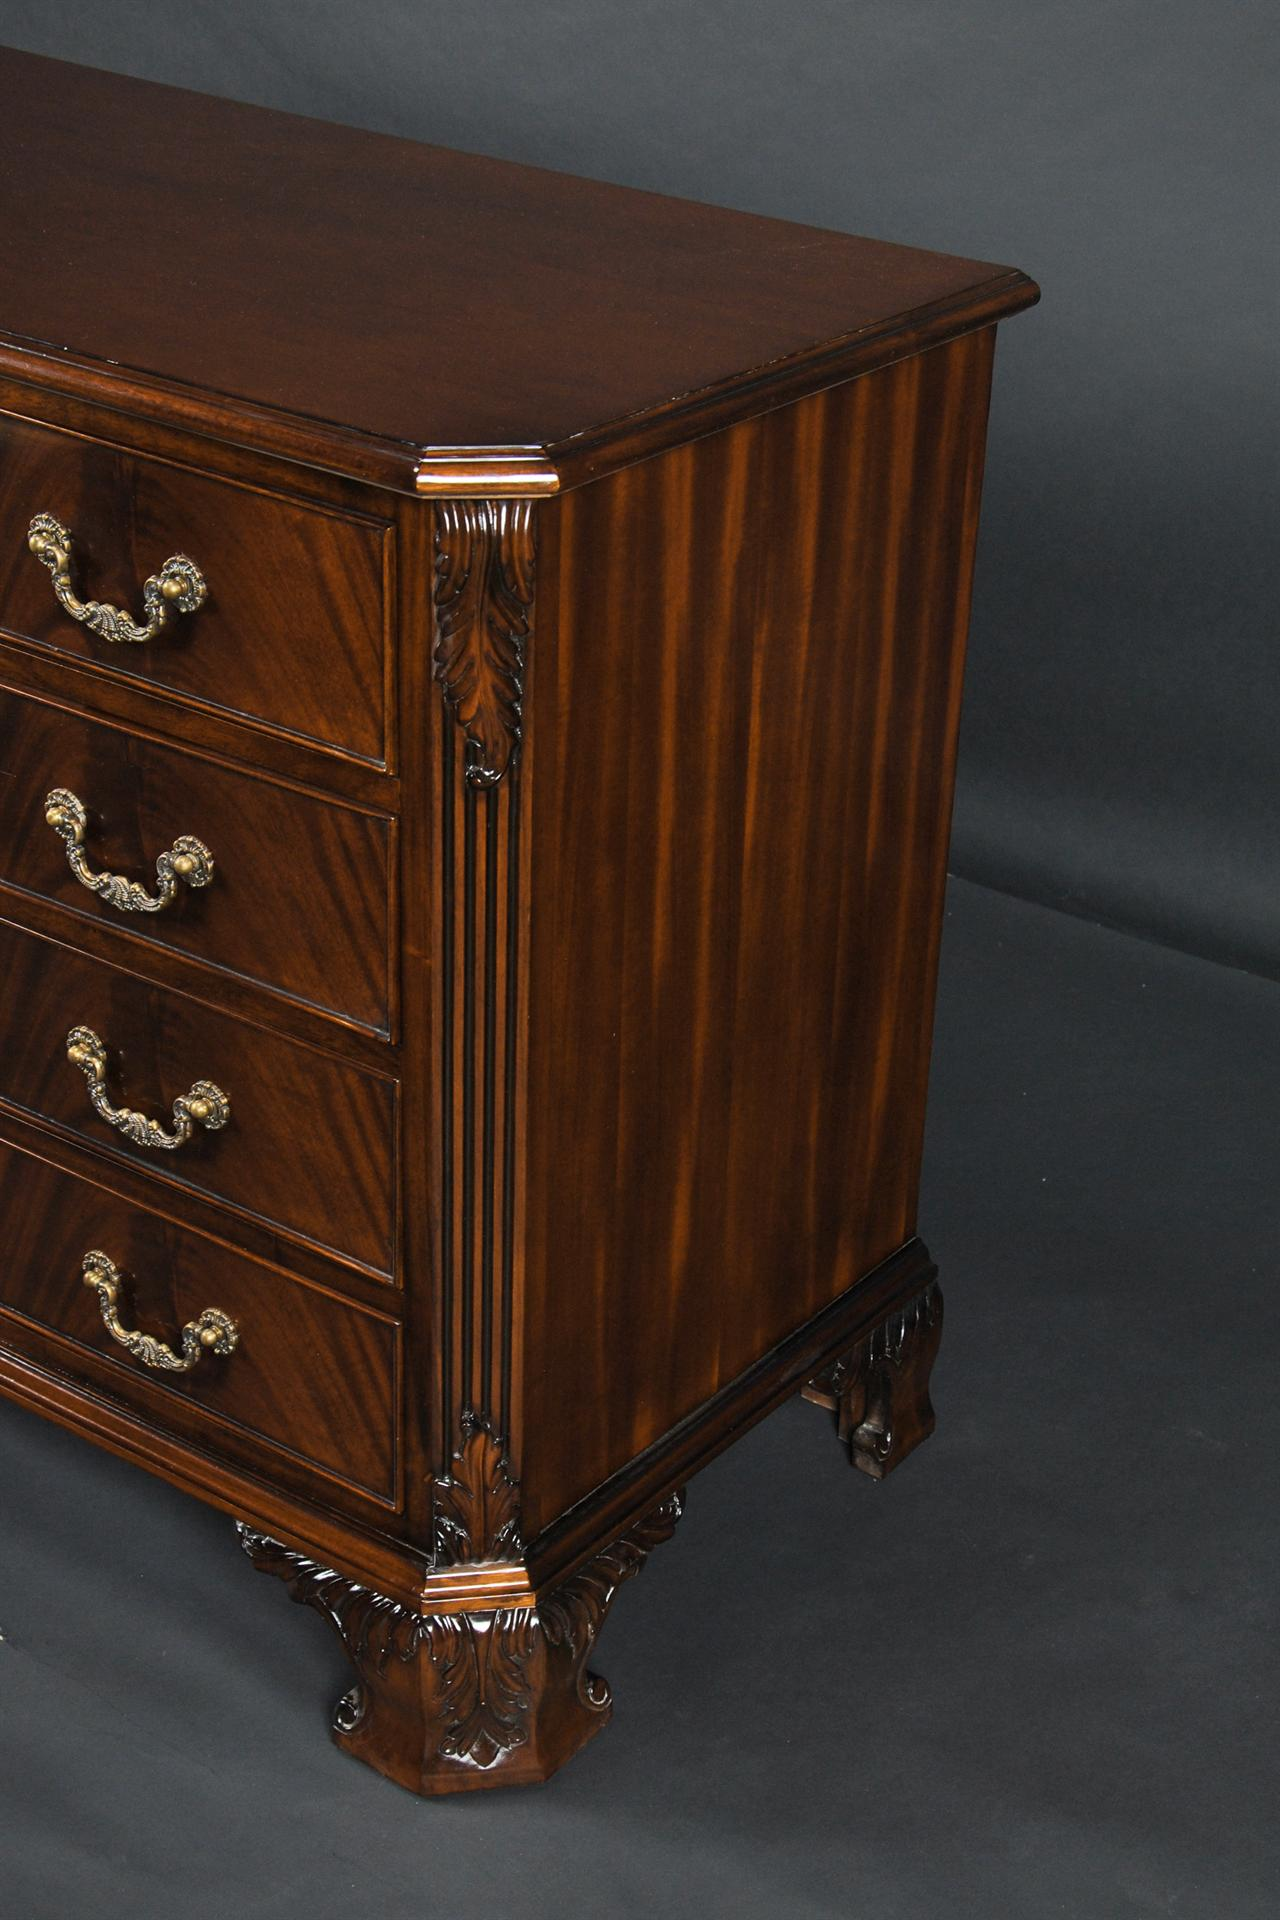 Mahogany Dresser With Hand Carved Details